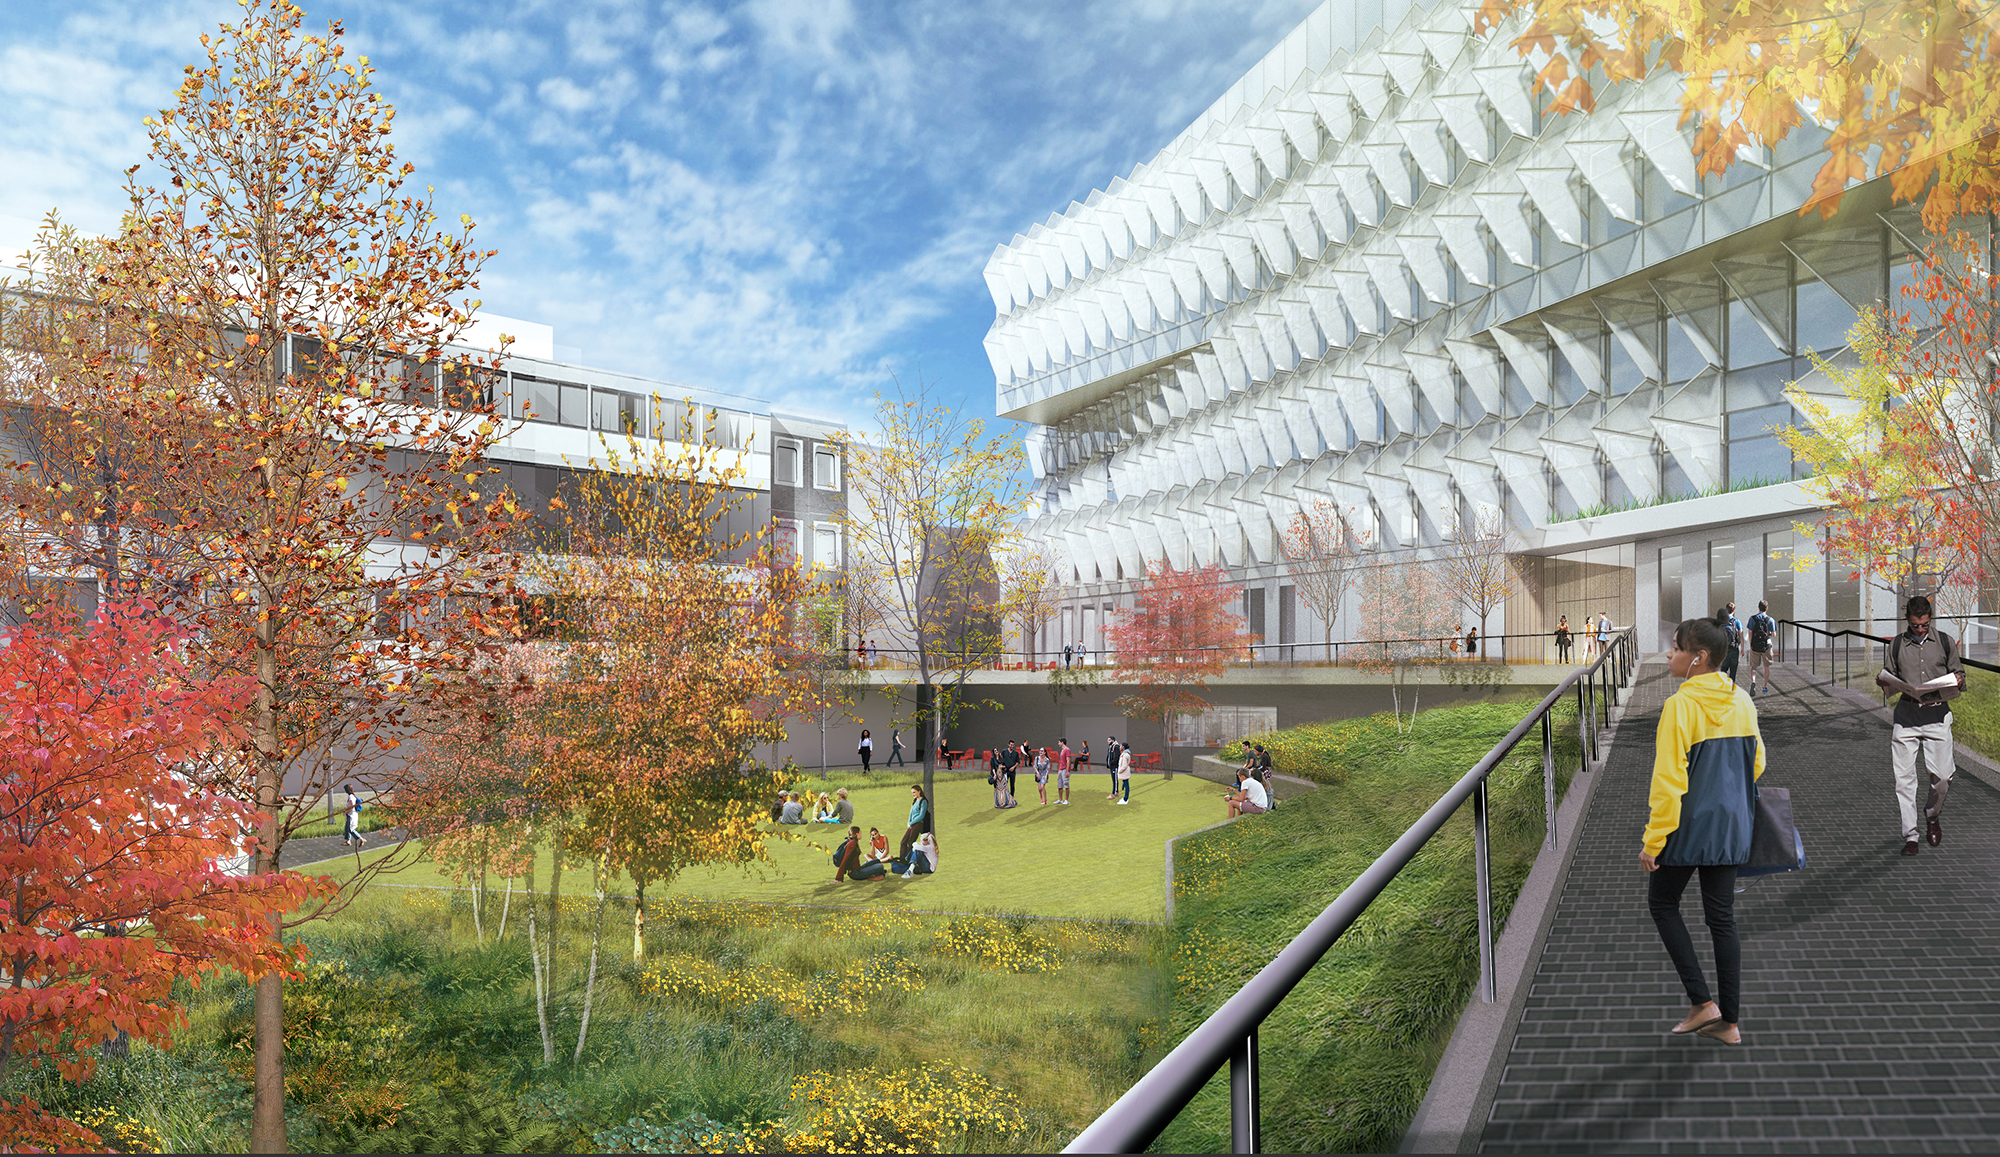 Architectural rendering of the back of the new Vagelos building and a large greenspace courtyard with trees.